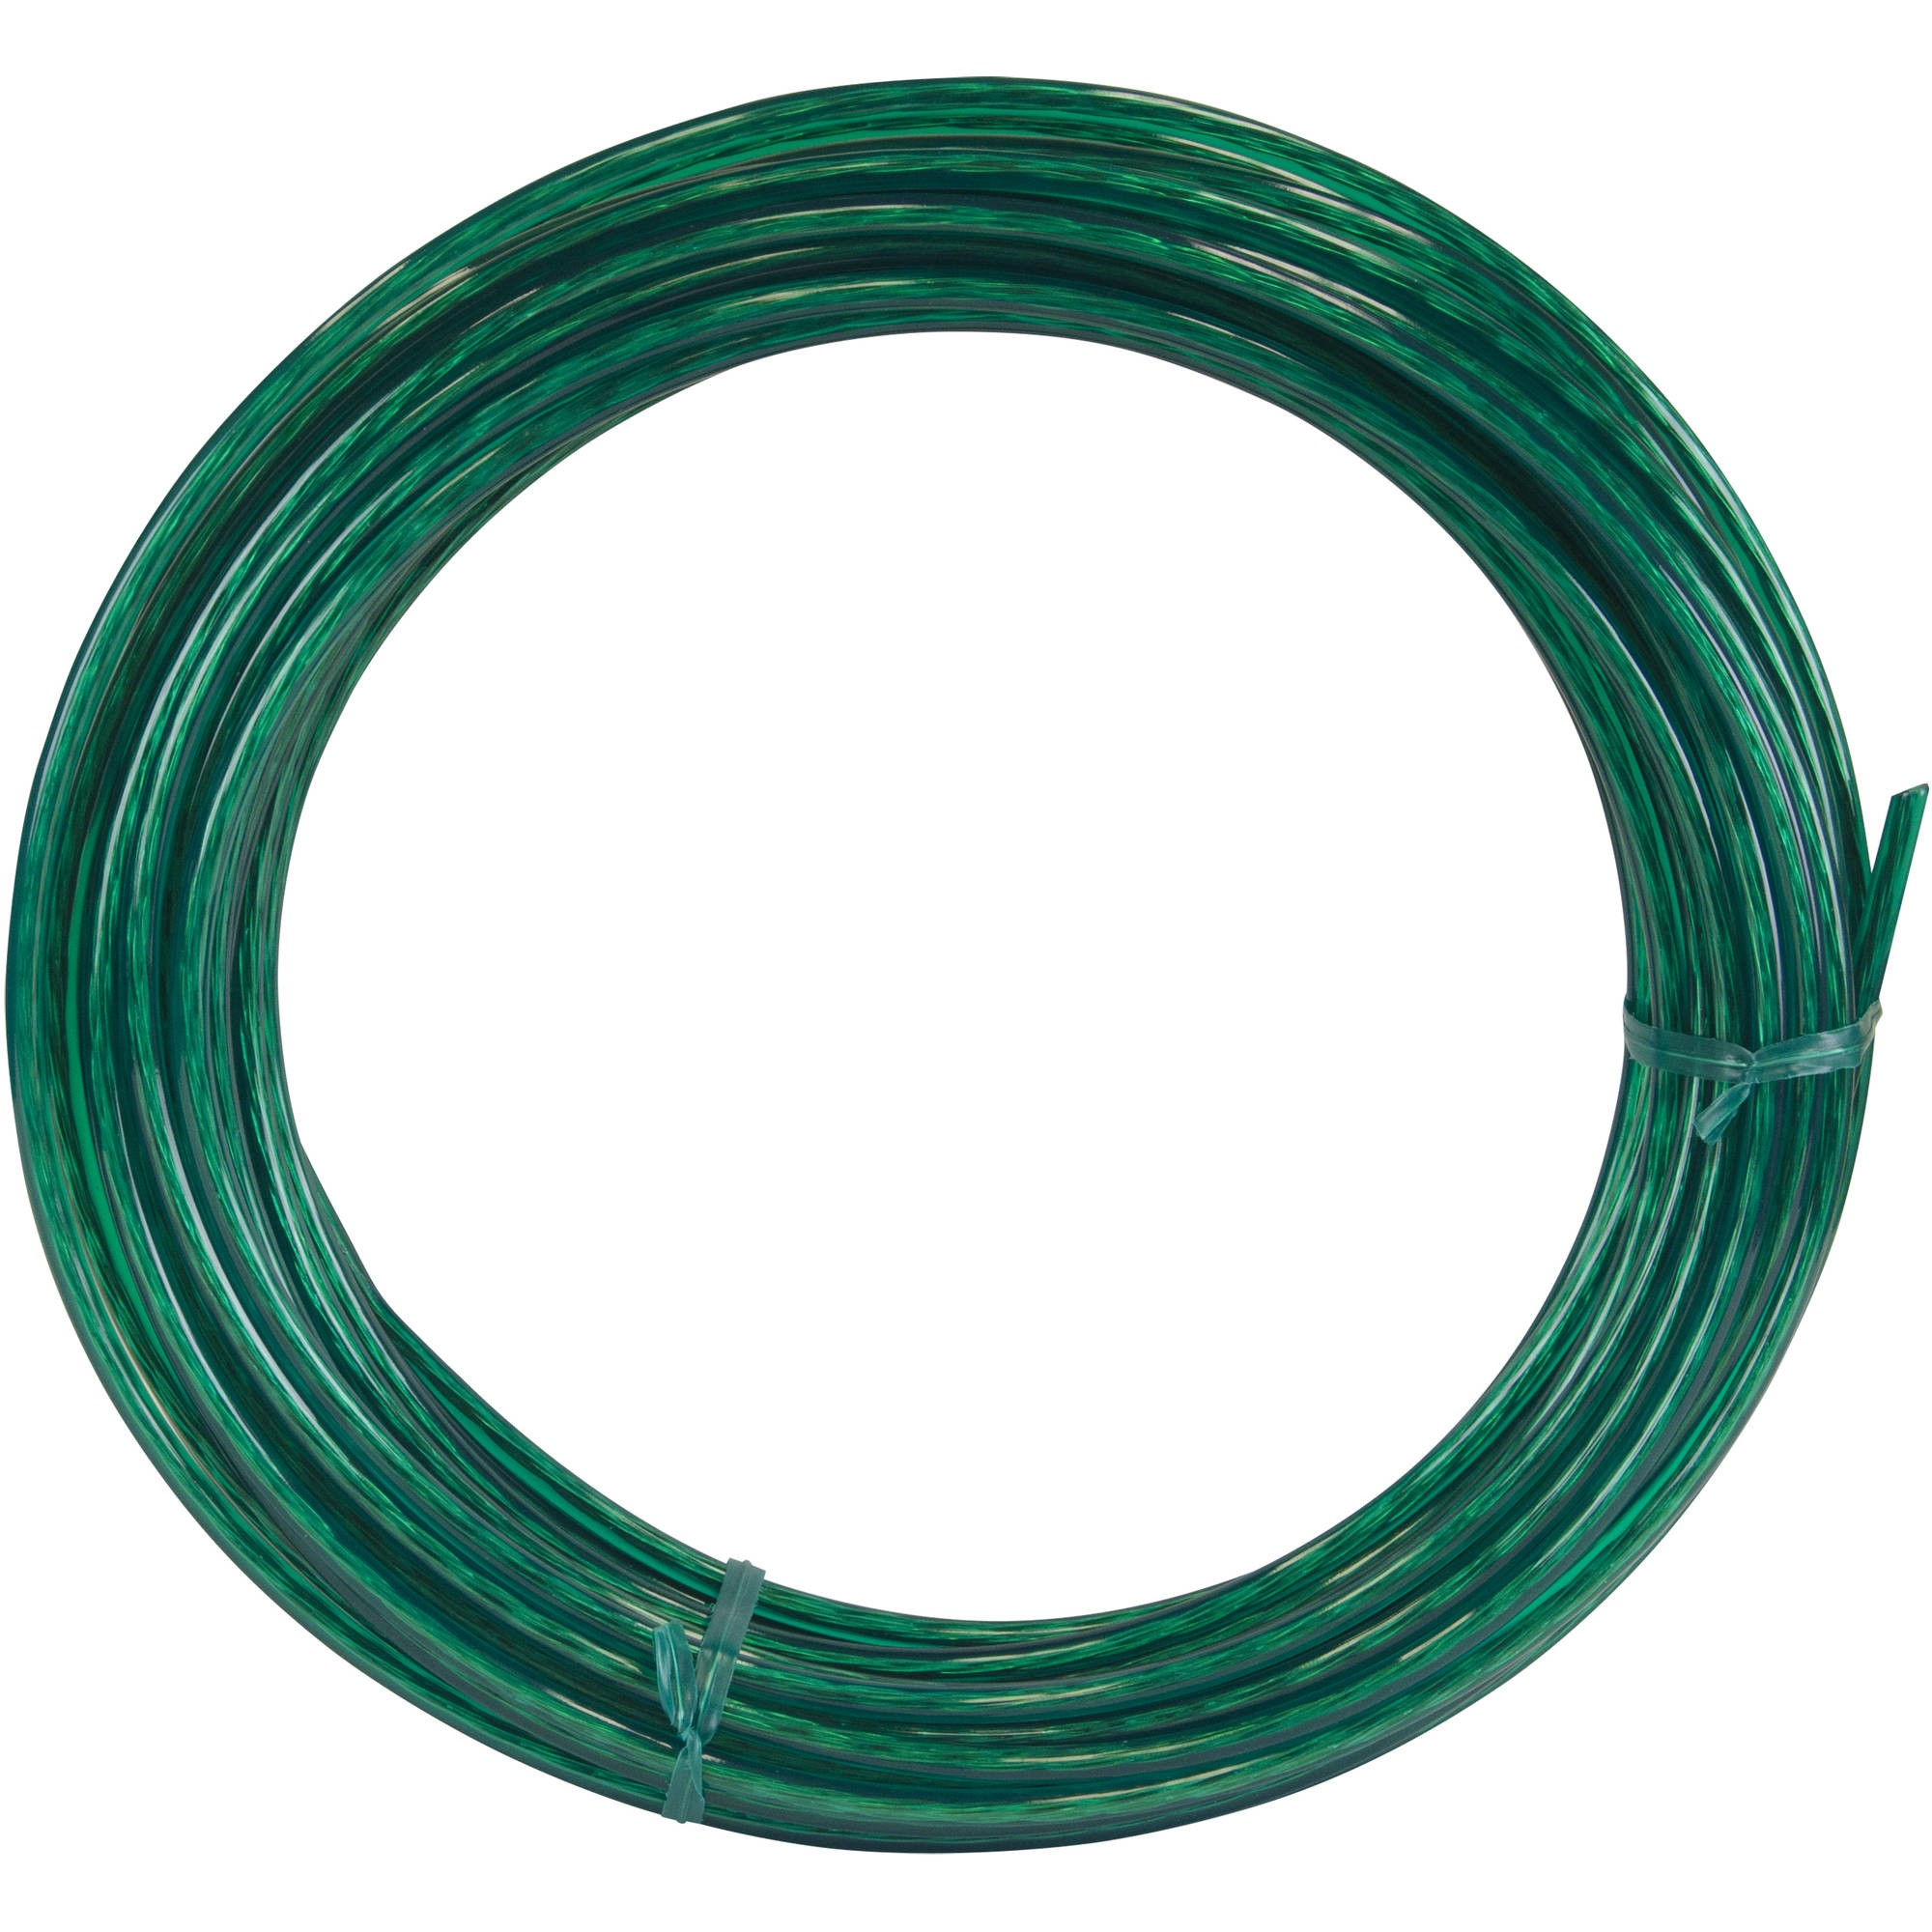 50' Green Vinyl Coated Clothesline Wire